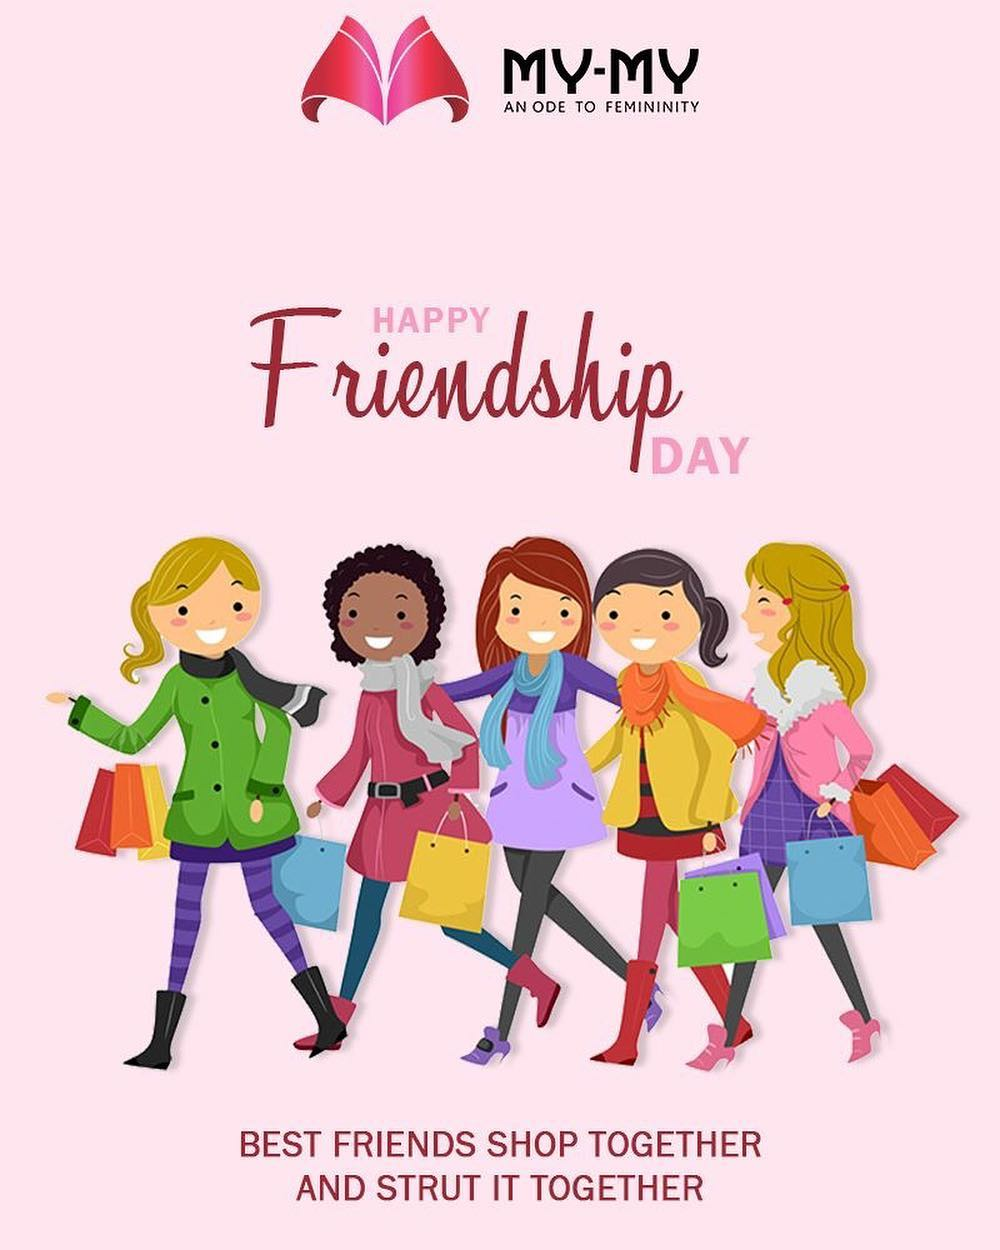 Best friends shop together & strut it together.  #HappyFriendshipDay #FriendshipDay18 #FriendshipDay #FriendshipDayCelebration #Friendship #Friends #MyMy #MyMyAhmedabad #Fashion #Ahmedabad #FemaleFashion